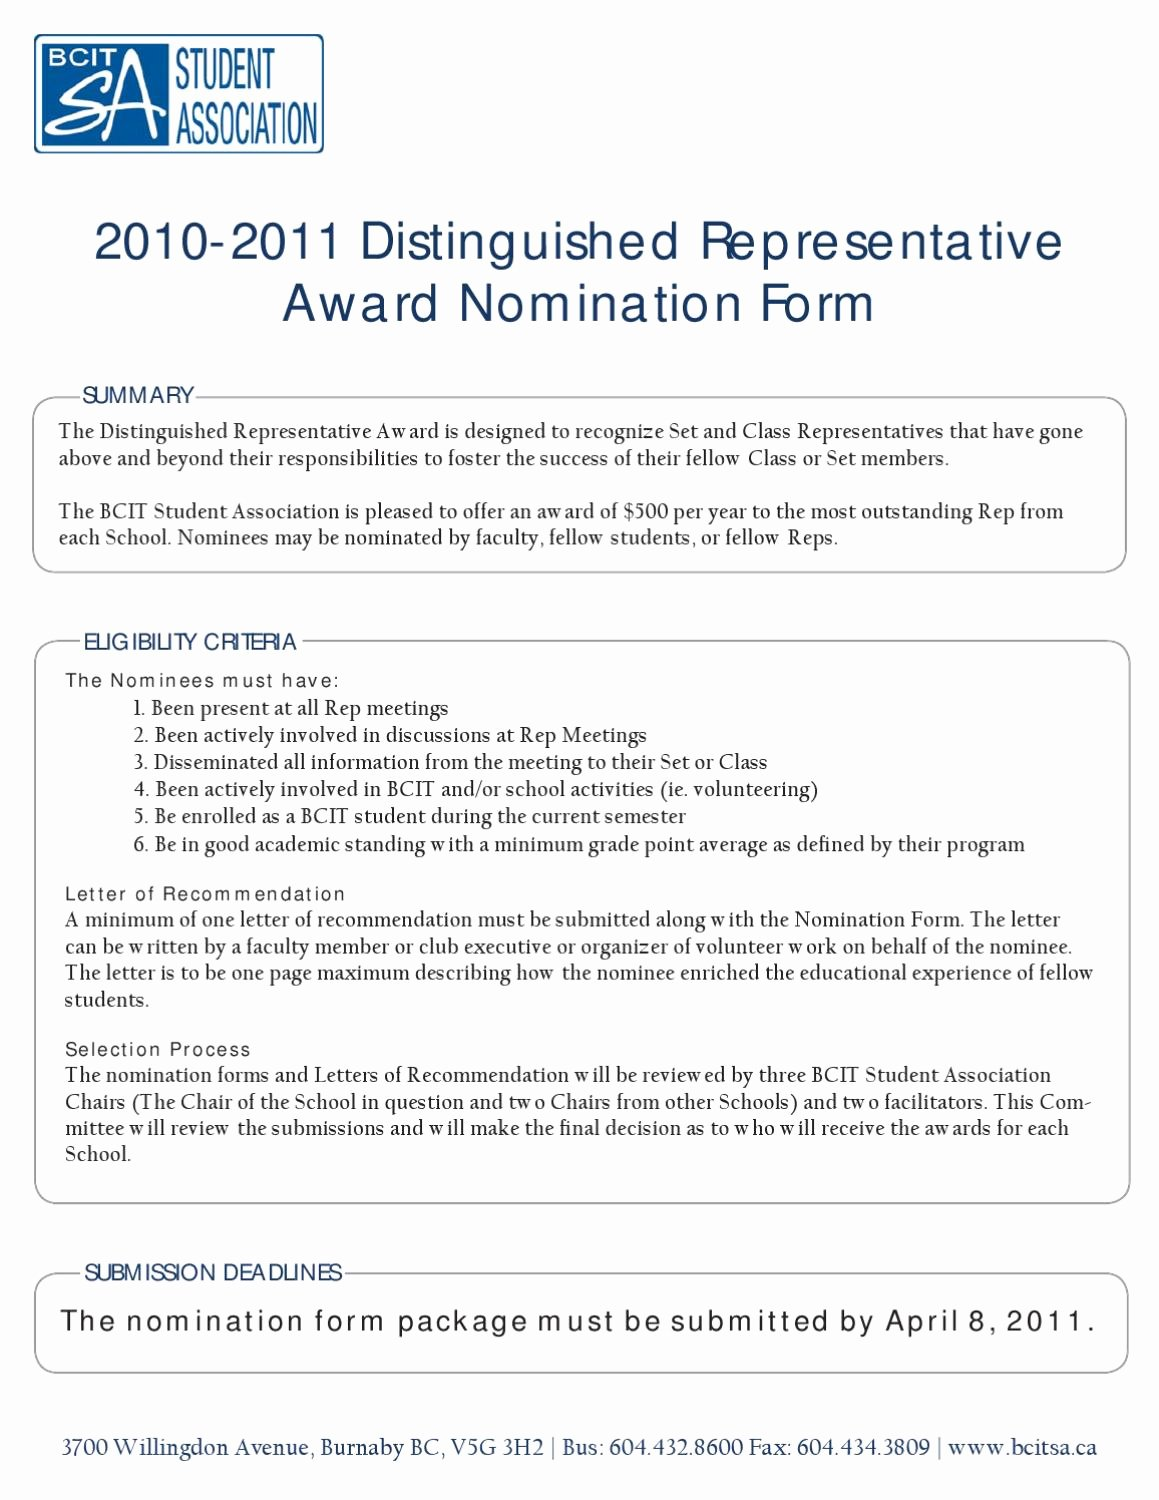 Recommendation Letter for Award Nomination New Distinquished Set Representative Award Nomination form by